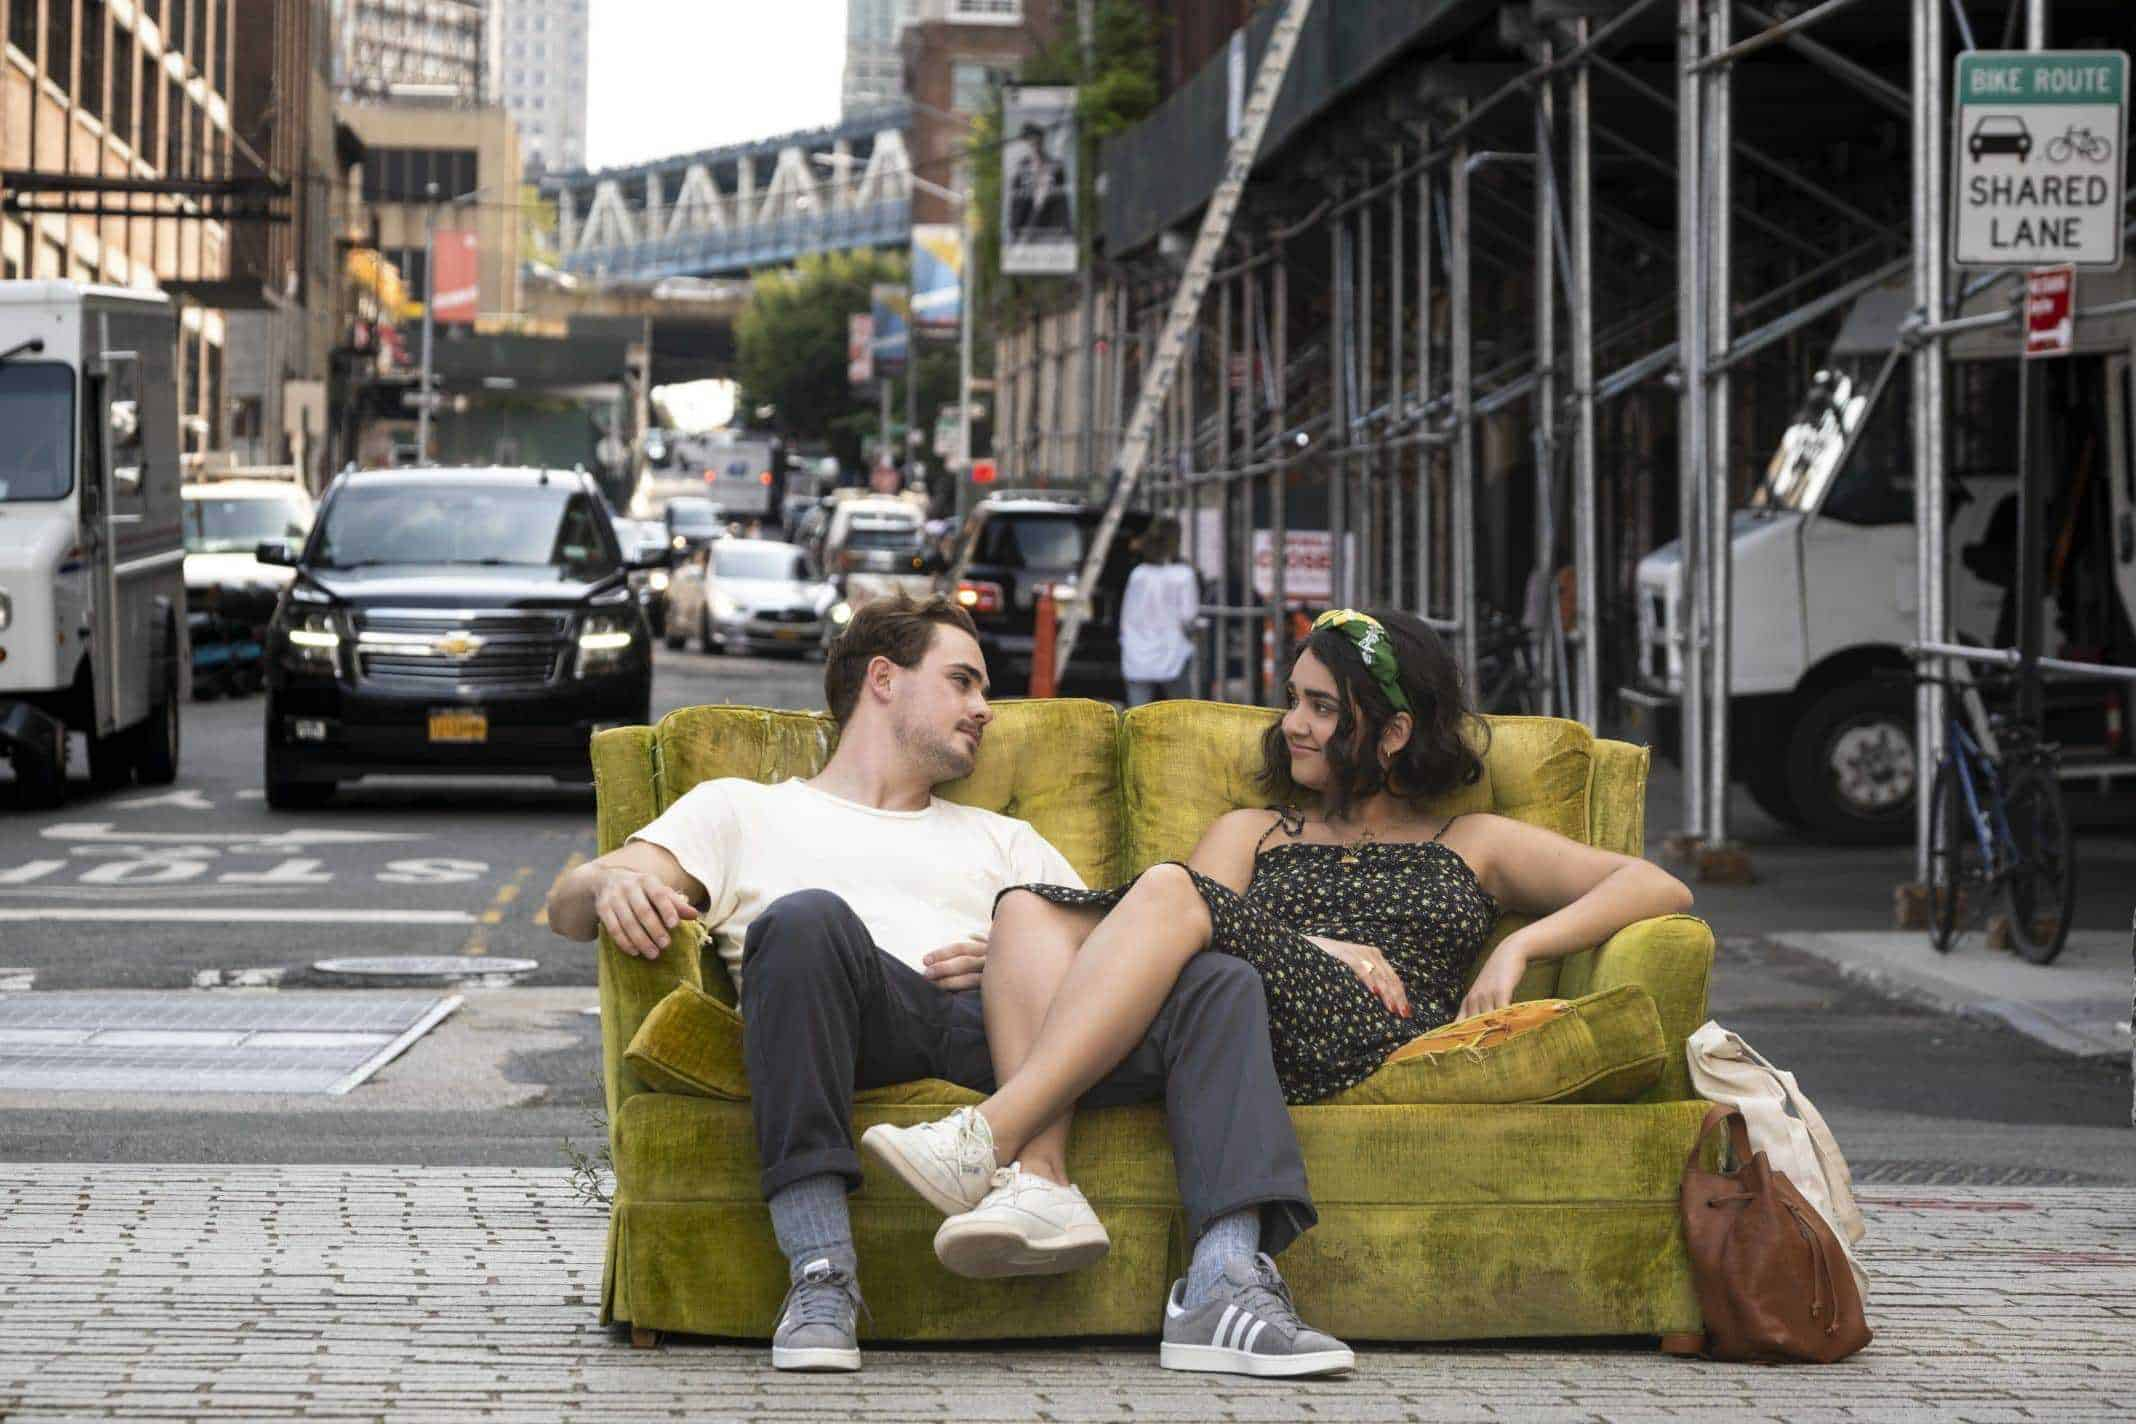 Nick (Dacre Montgomery) and Lucy (Geraldine Viswanathan) sitting on a couch together, outside.